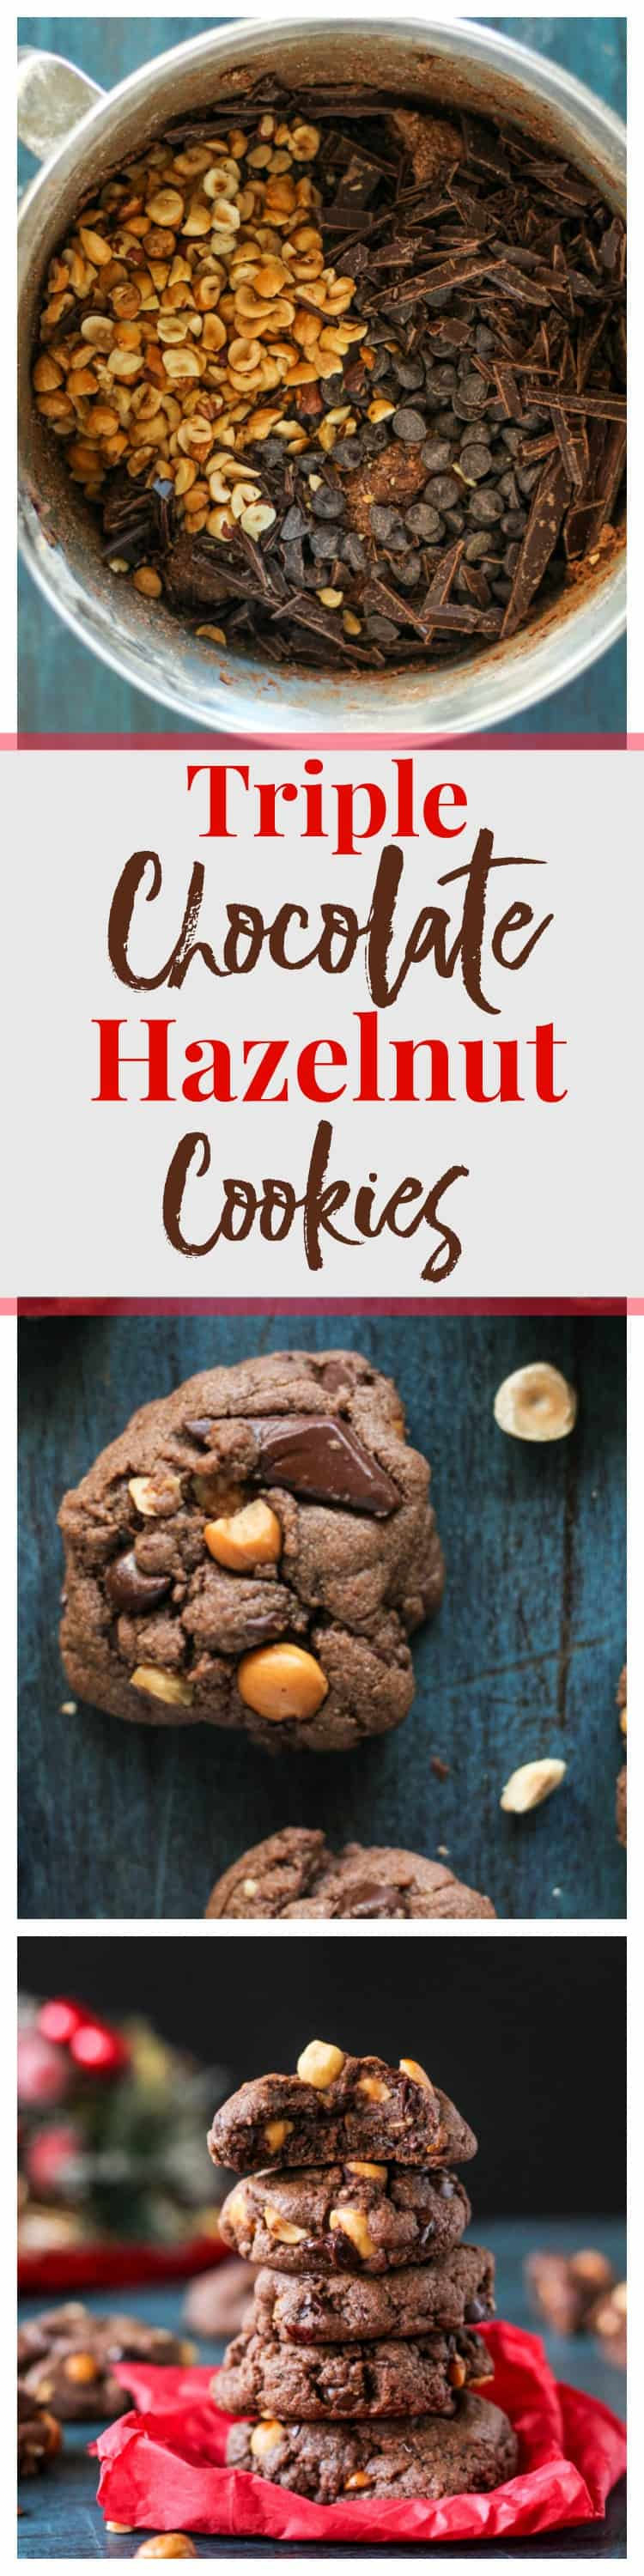 Triple Chocolate Hazelnut Cookies are rich, chewy, and delicious!